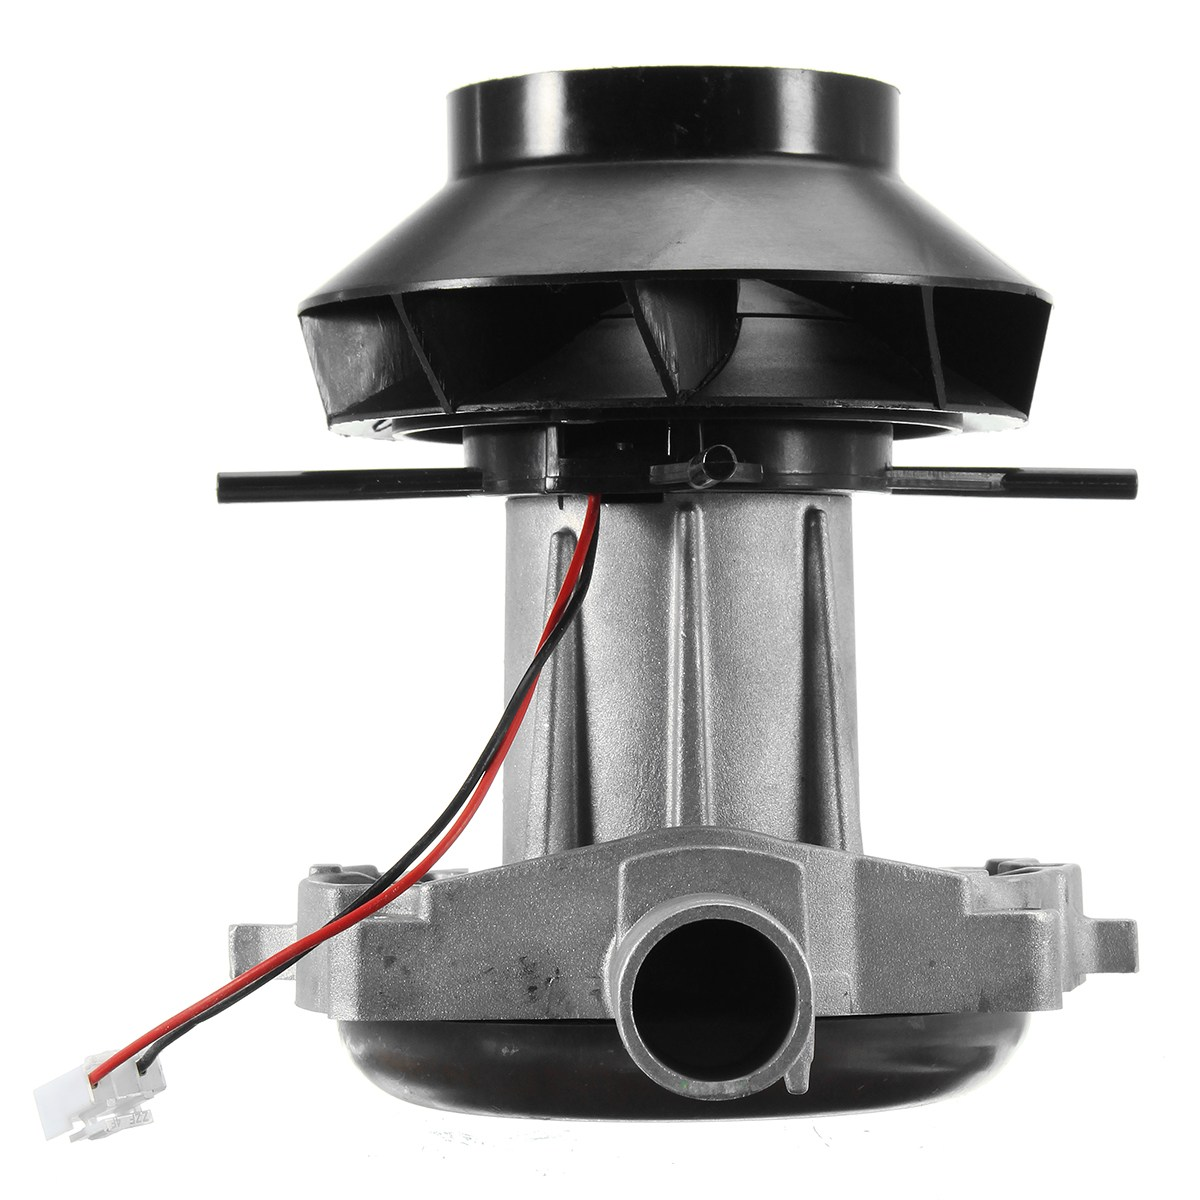 New 12V 24V Blower Motor Combustion Air Fan For Webasto Eberspacher Airtronic D4 Air Devr Parking Heater Replacement beler exhaust silencer intake filter combustion air pipe kit fit for webasto eberspacher auto heater